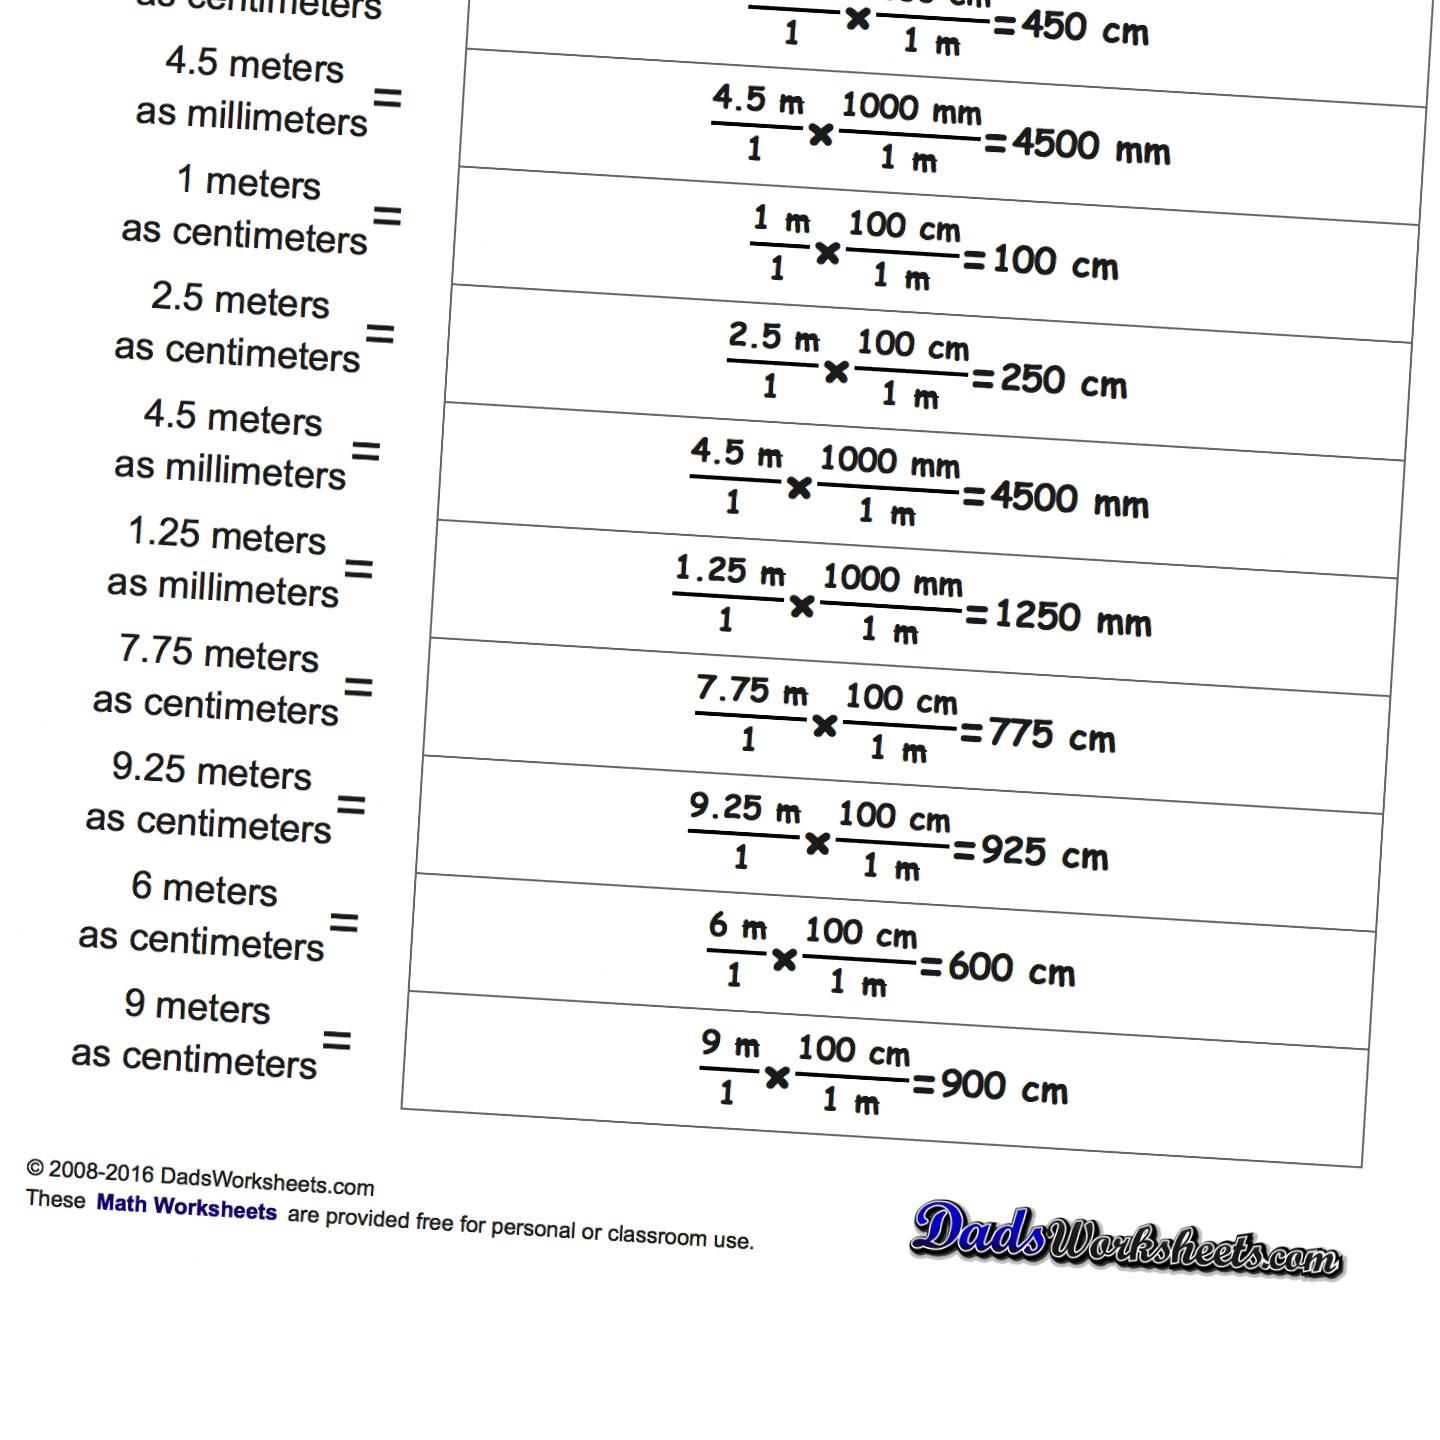 worksheet Metric System Worksheets metric si unit conversions this page contains links to free math conversion worksheets for the system or length millimeters meters and similar volume milliliters t